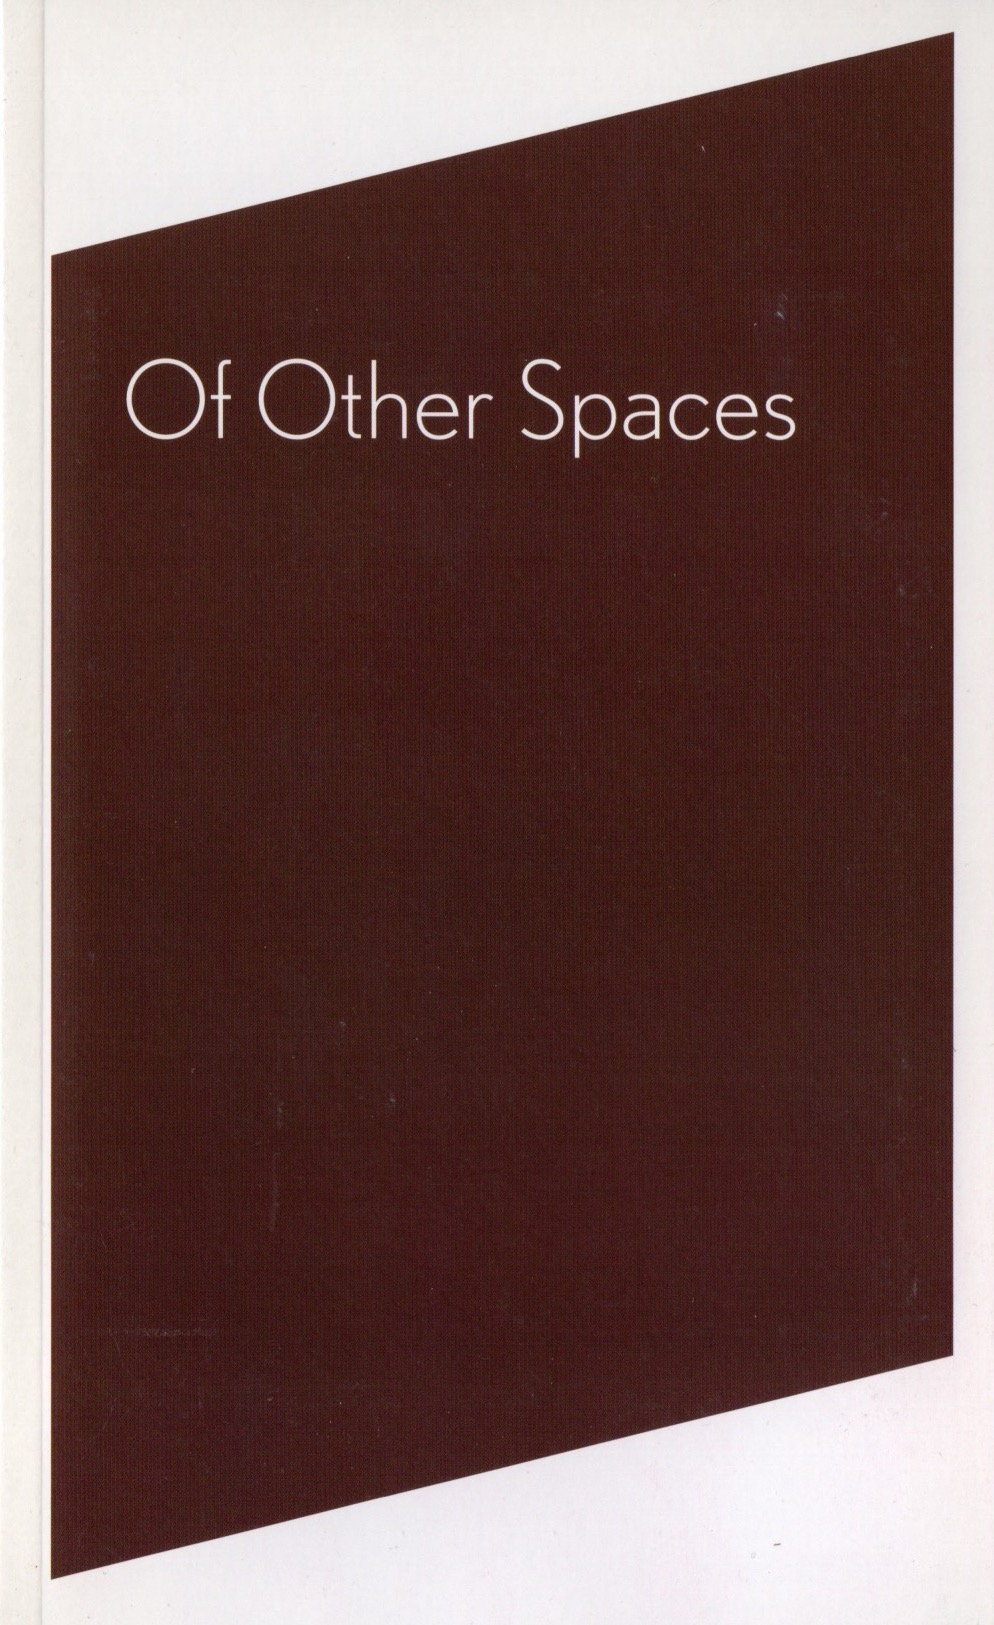 Of Other Spaces.jpg